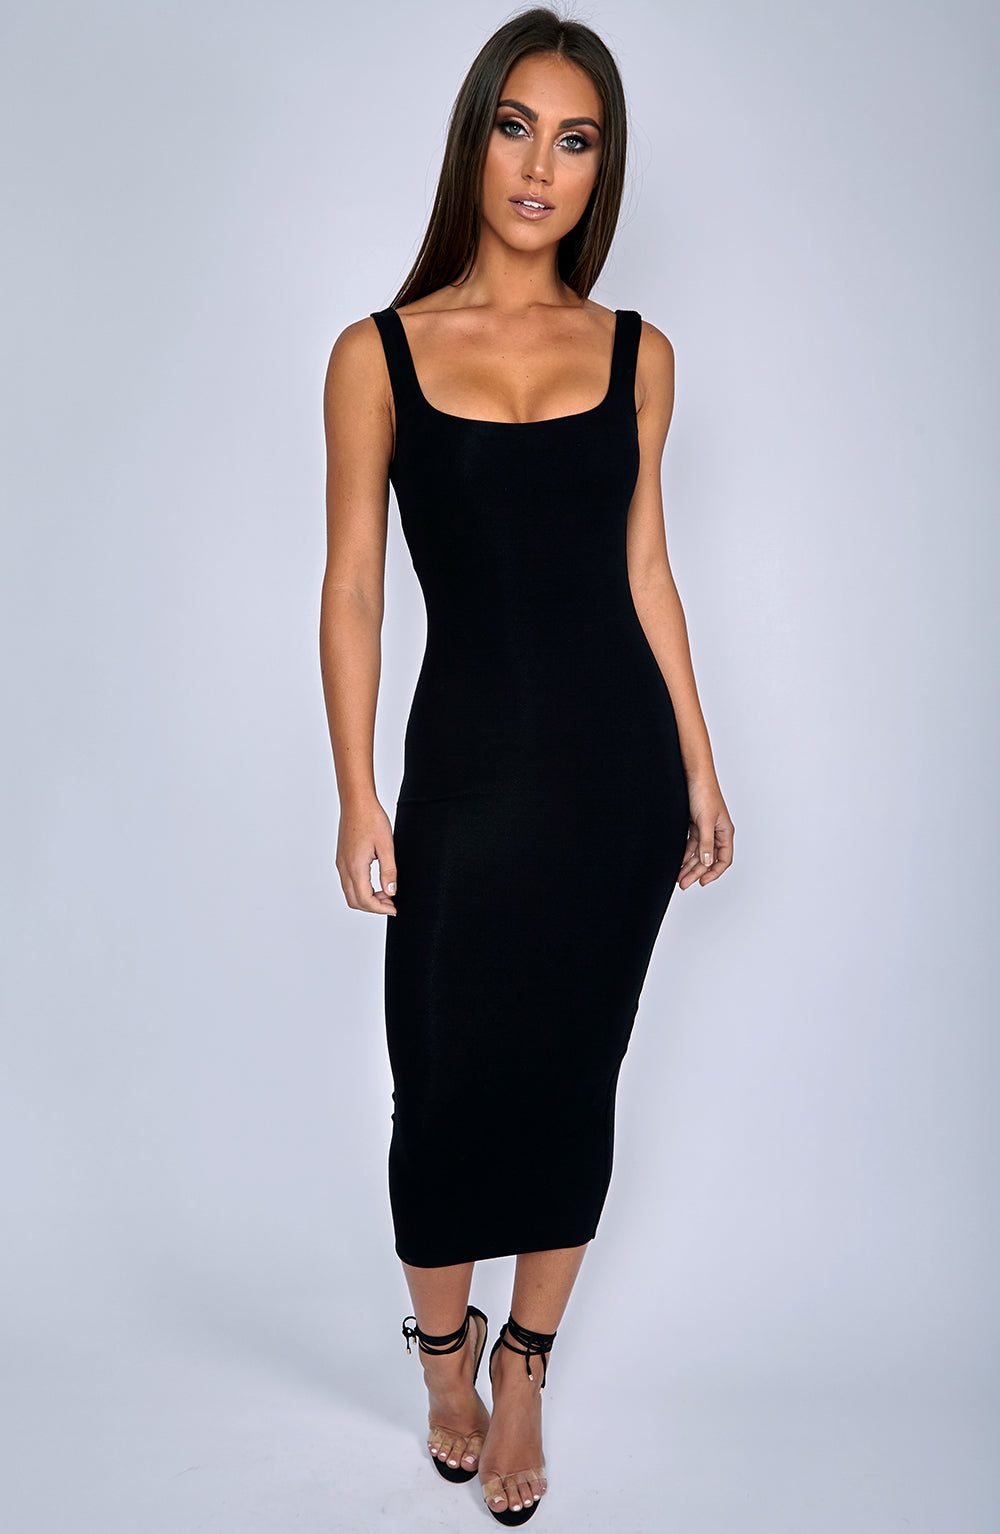 Basic Bish Dress - Black